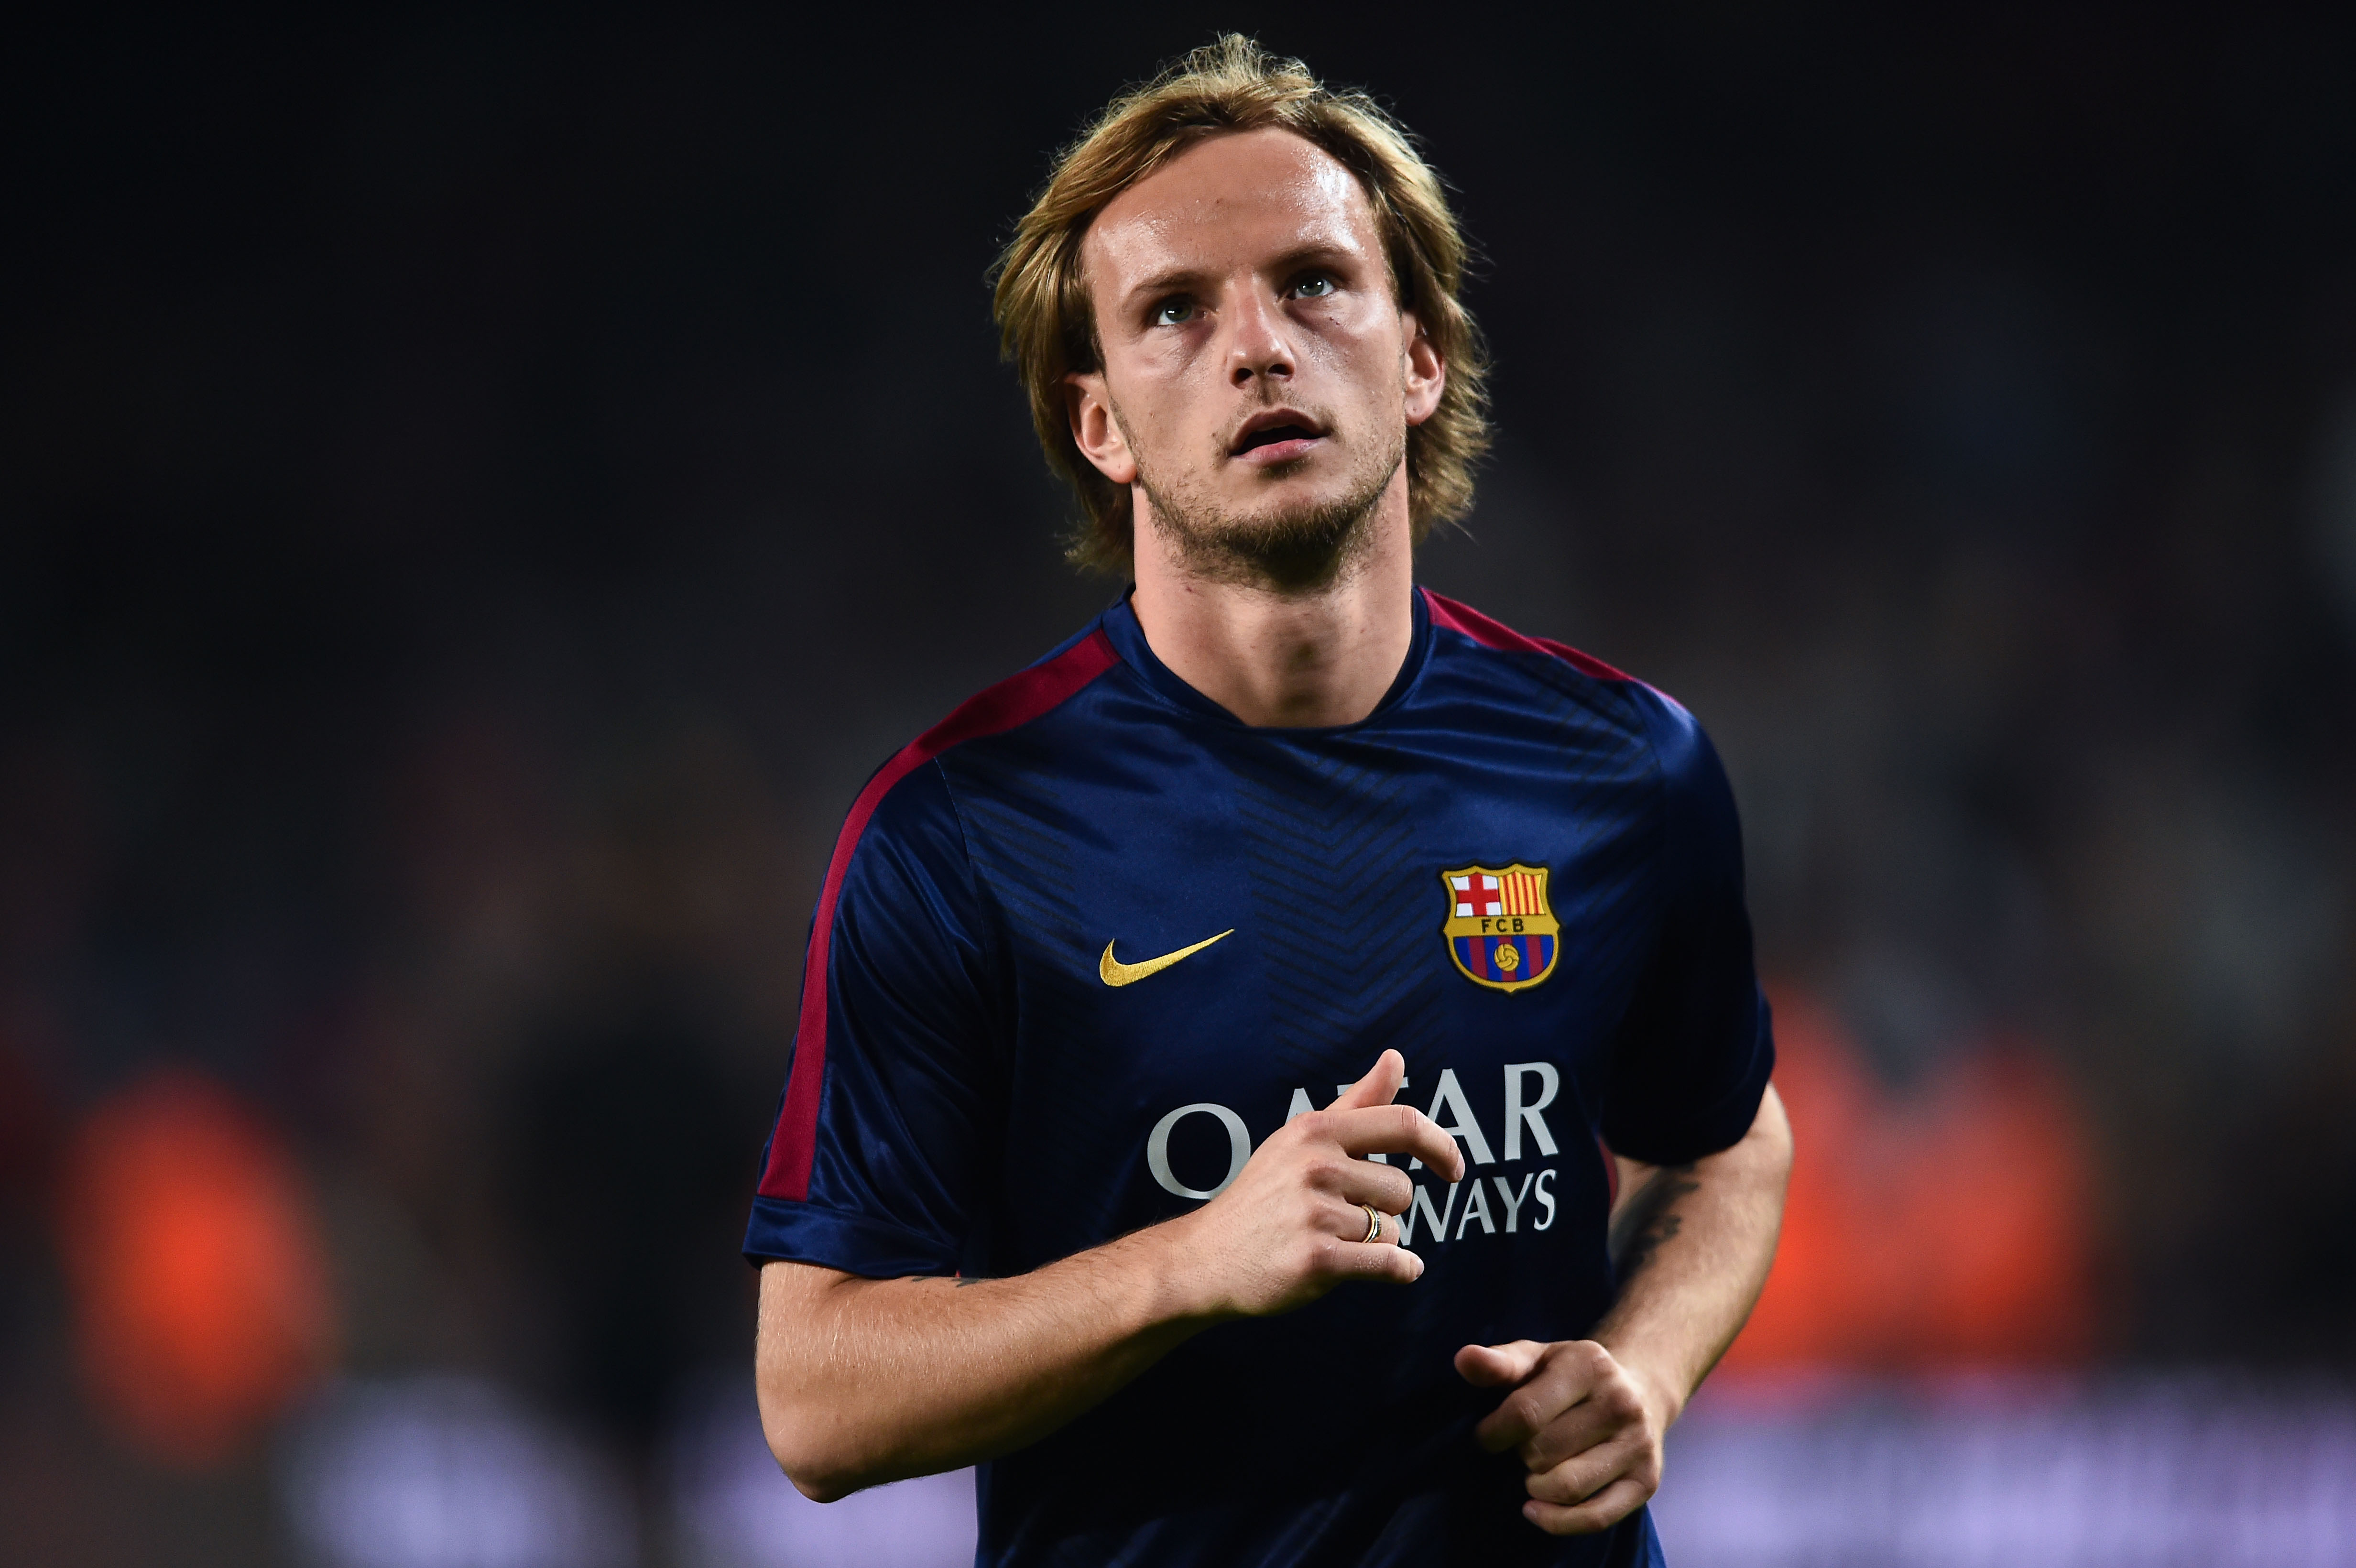 Manchester United target Ivan Rakitic wants to stay at Barcelona, reveals agent